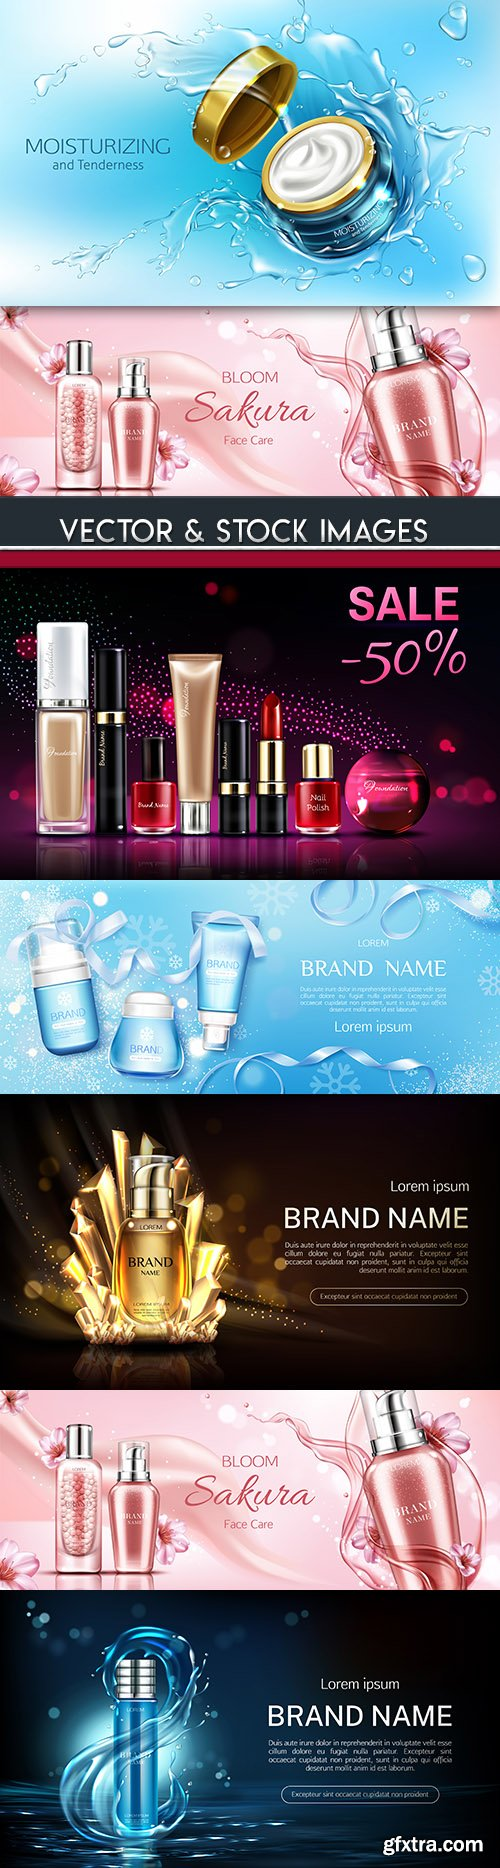 Brand name cosmetics plastic and bottles 3d illustration